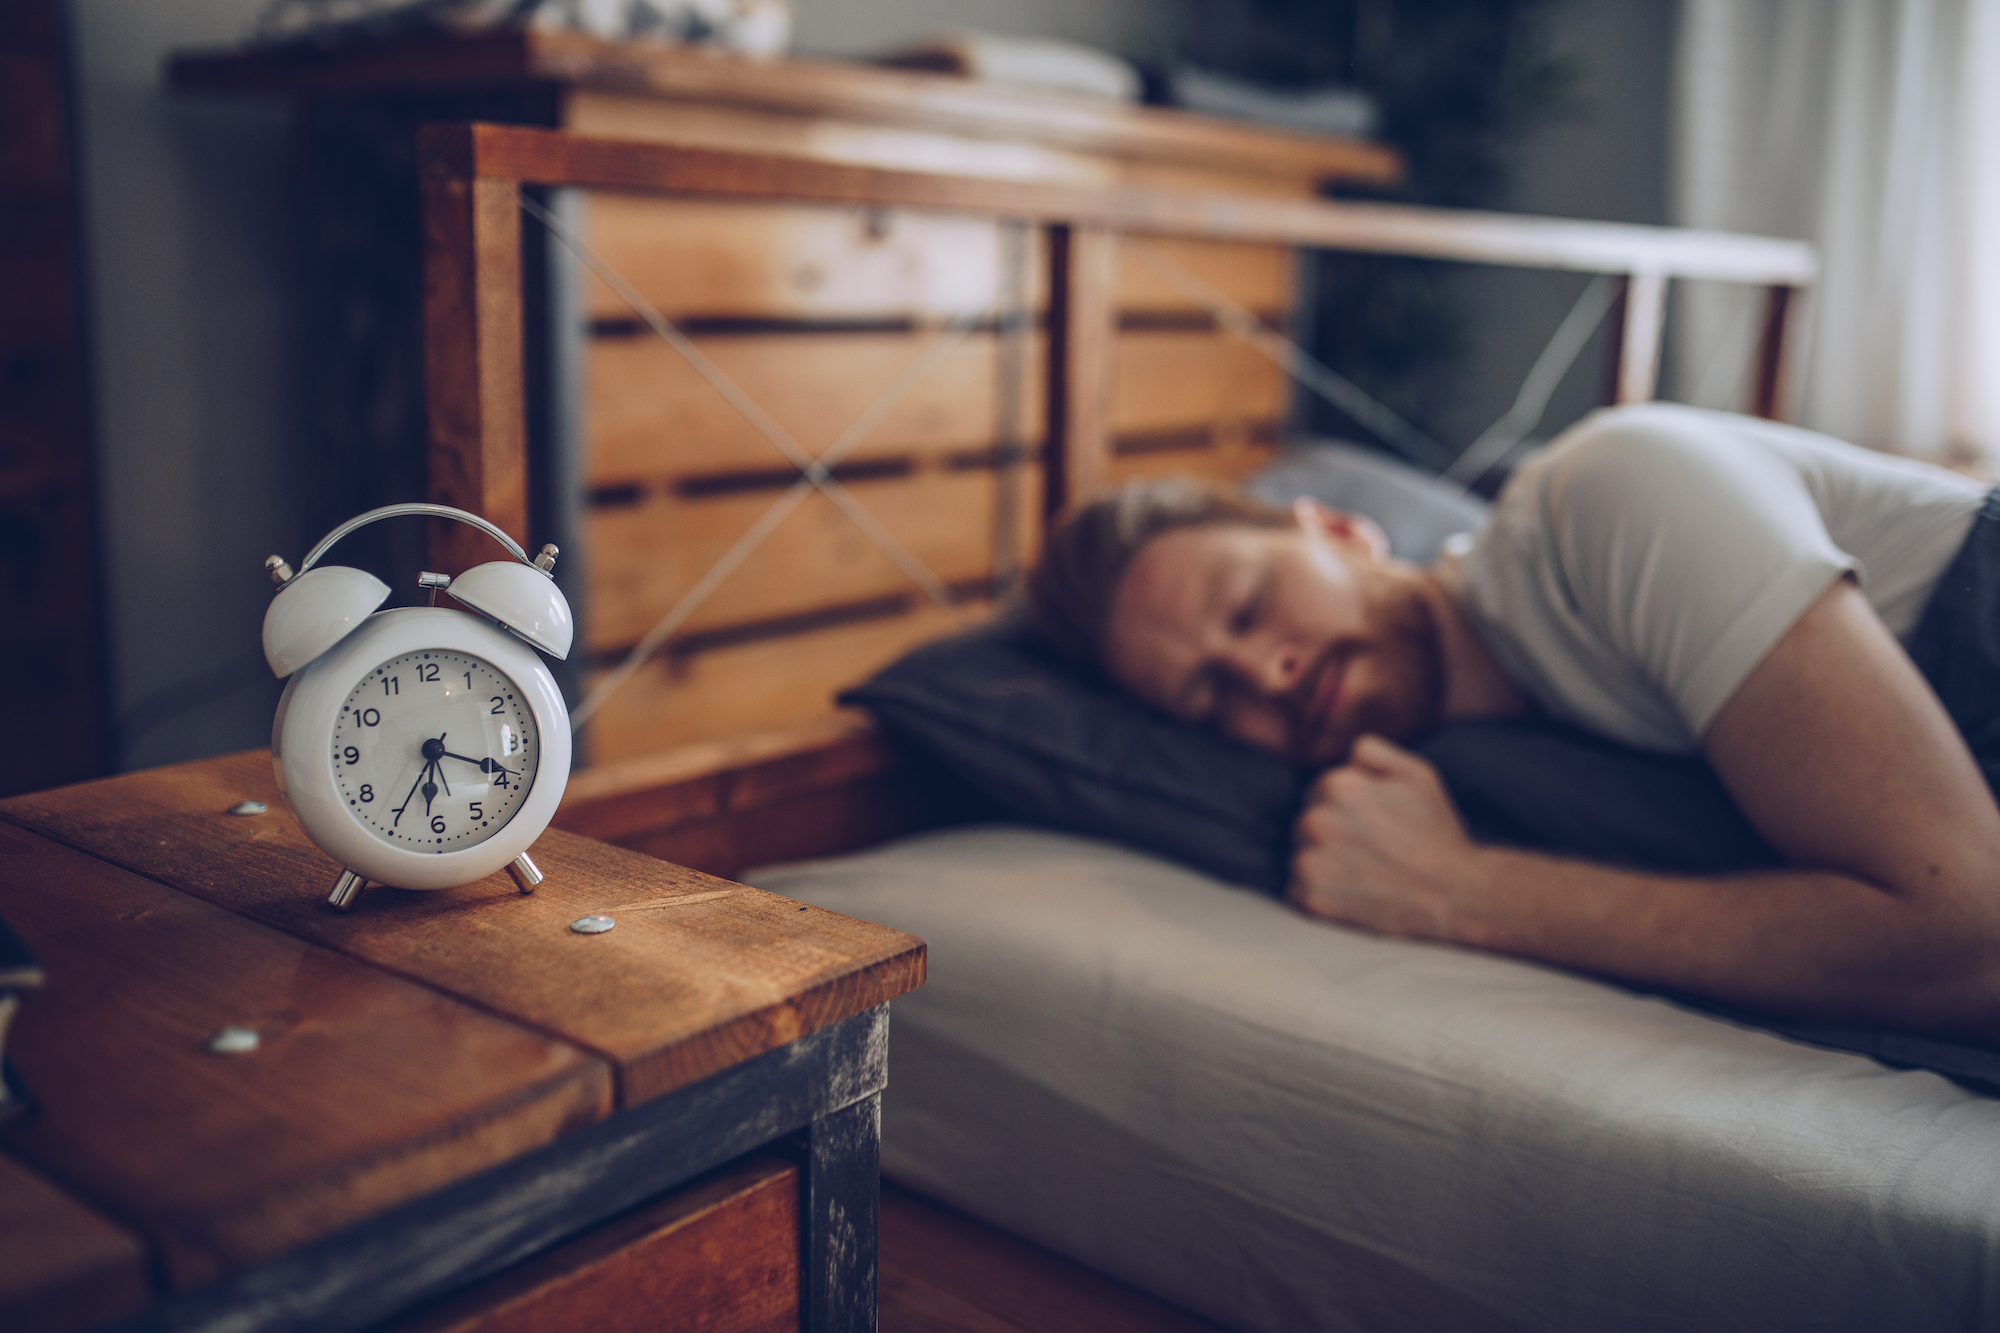 Tips for effective rest and recovery after cycling